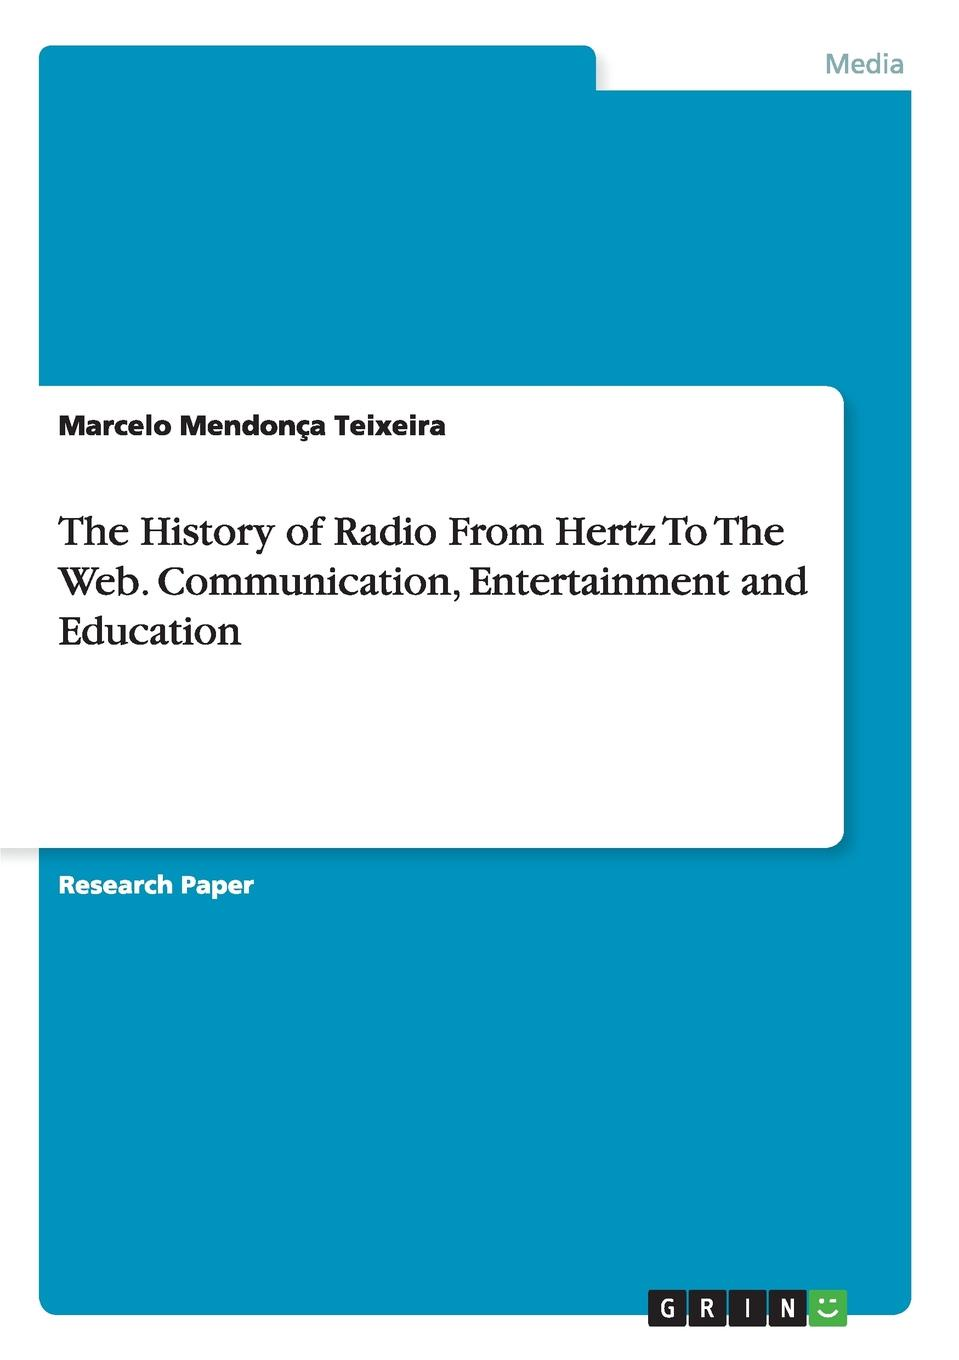 Marcelo Mendonça Teixeira The History of Radio From Hertz To The Web. Communication, Entertainment and Education mediating europe new media mass communications and the european public sphere